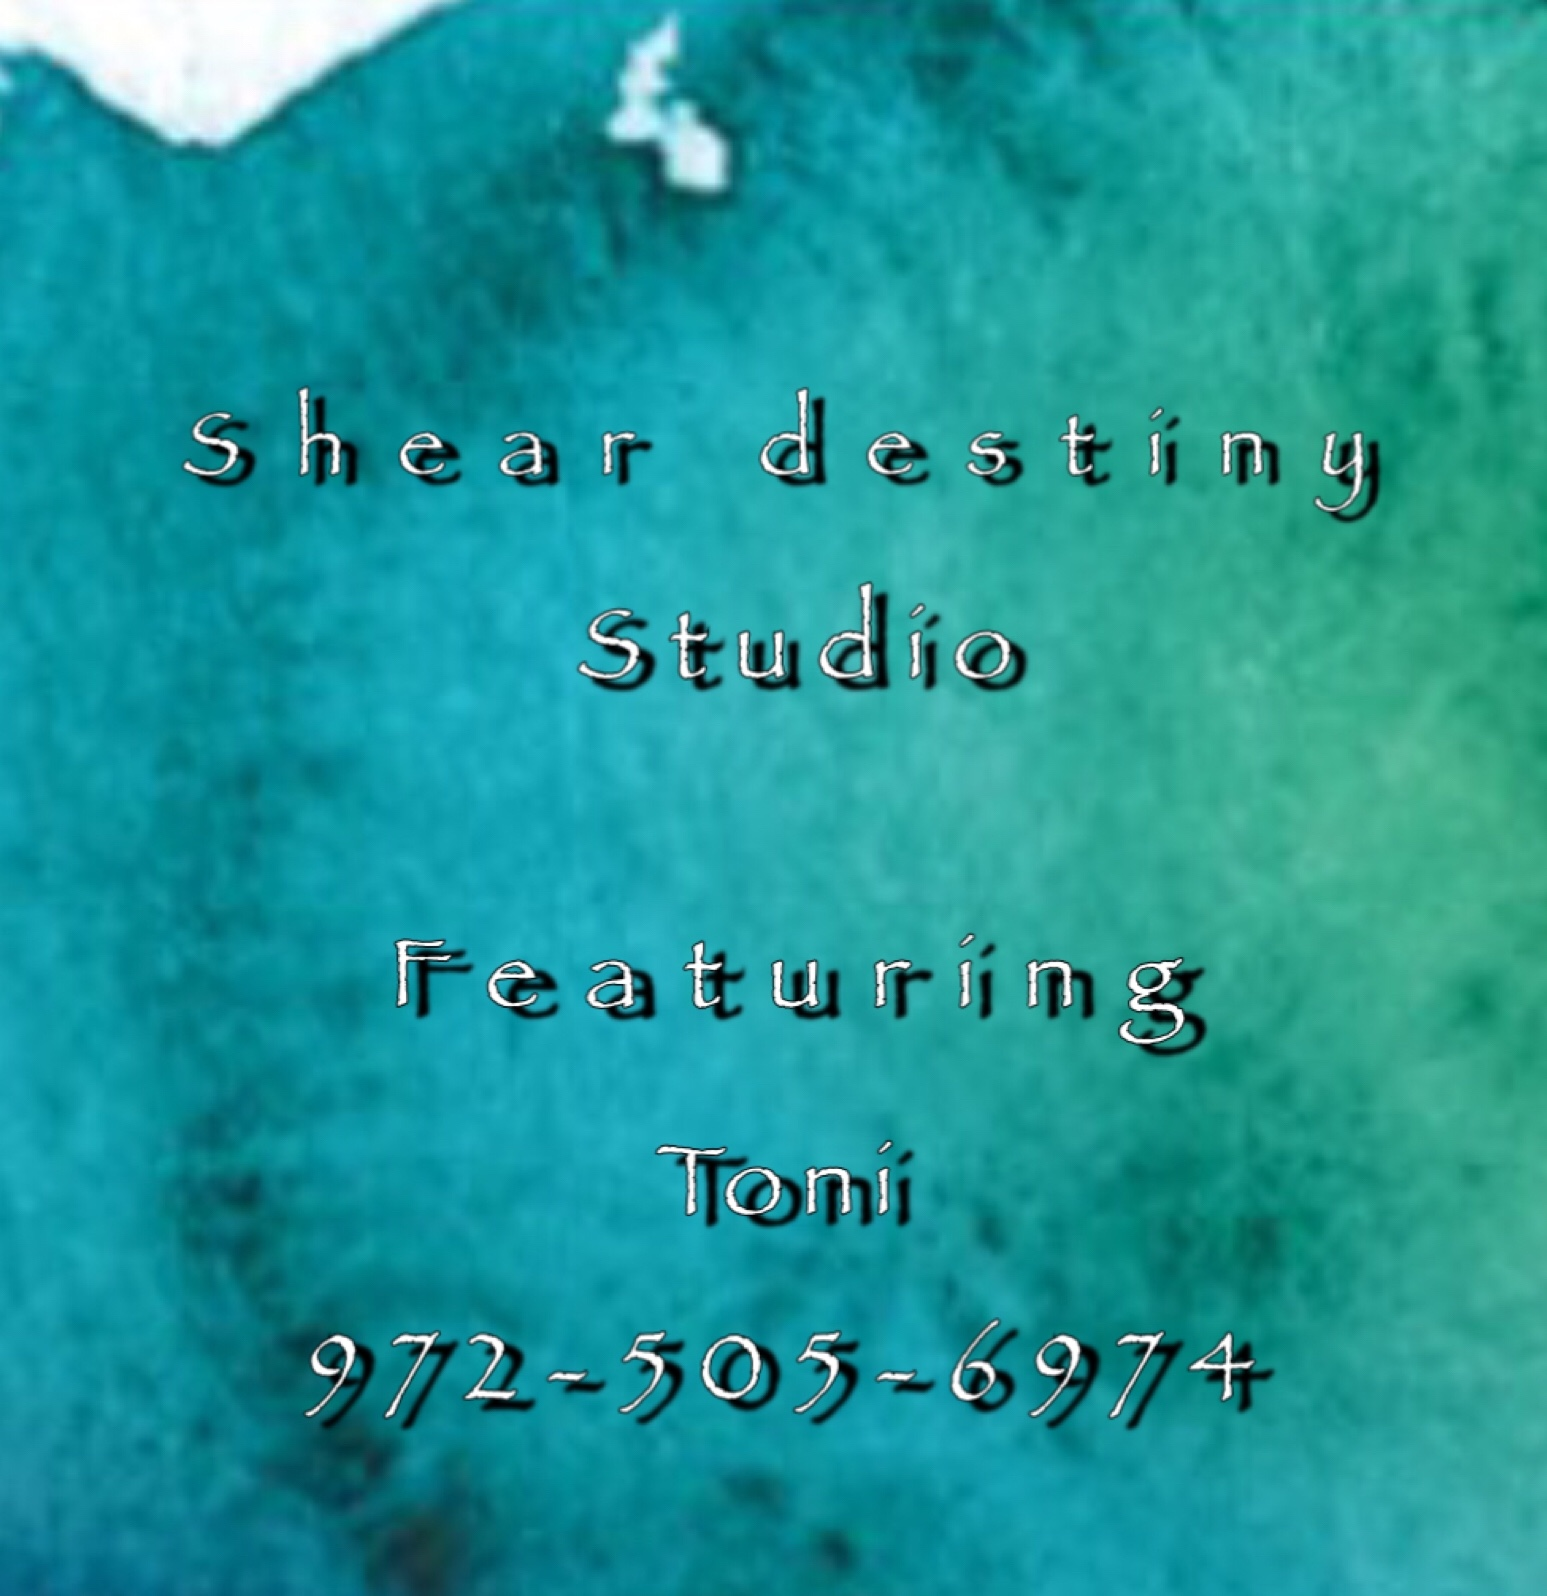 Shear Destiny Studio at Salon Boutique featuring Toni